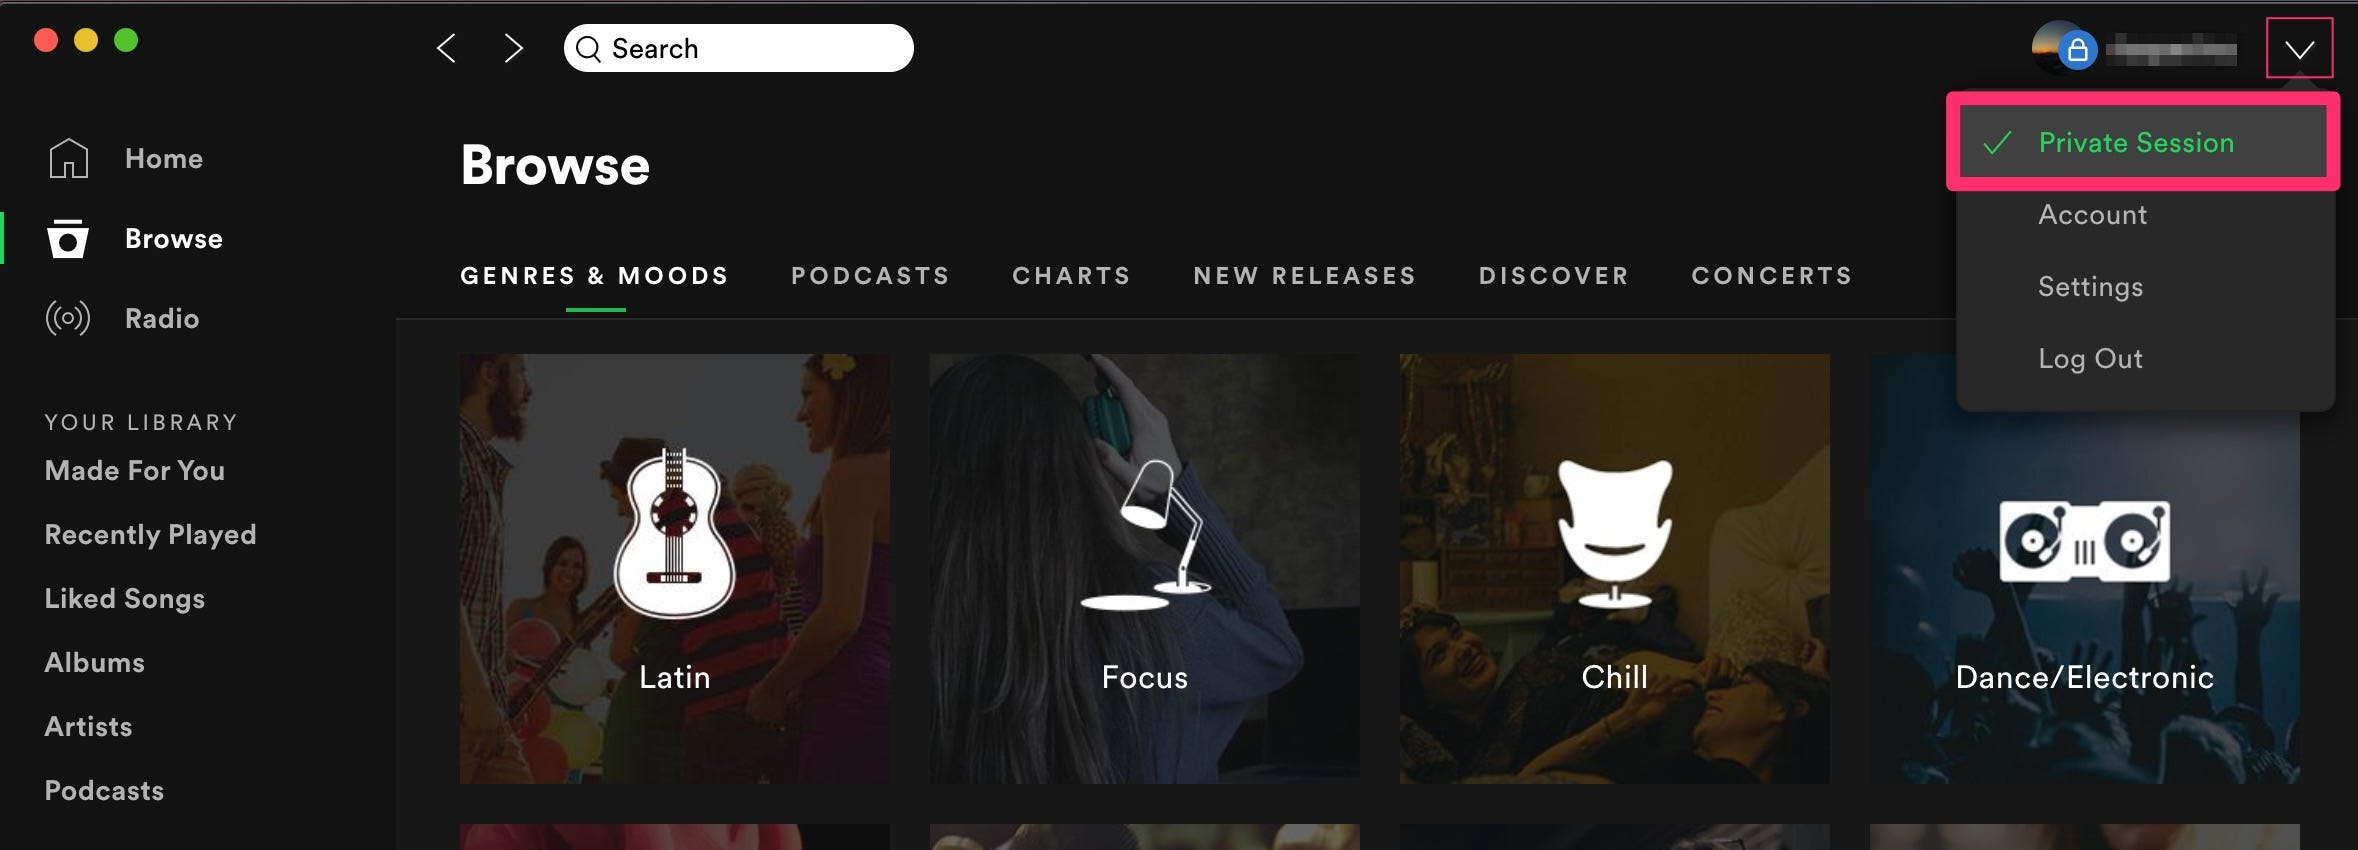 What is private session on Spotify